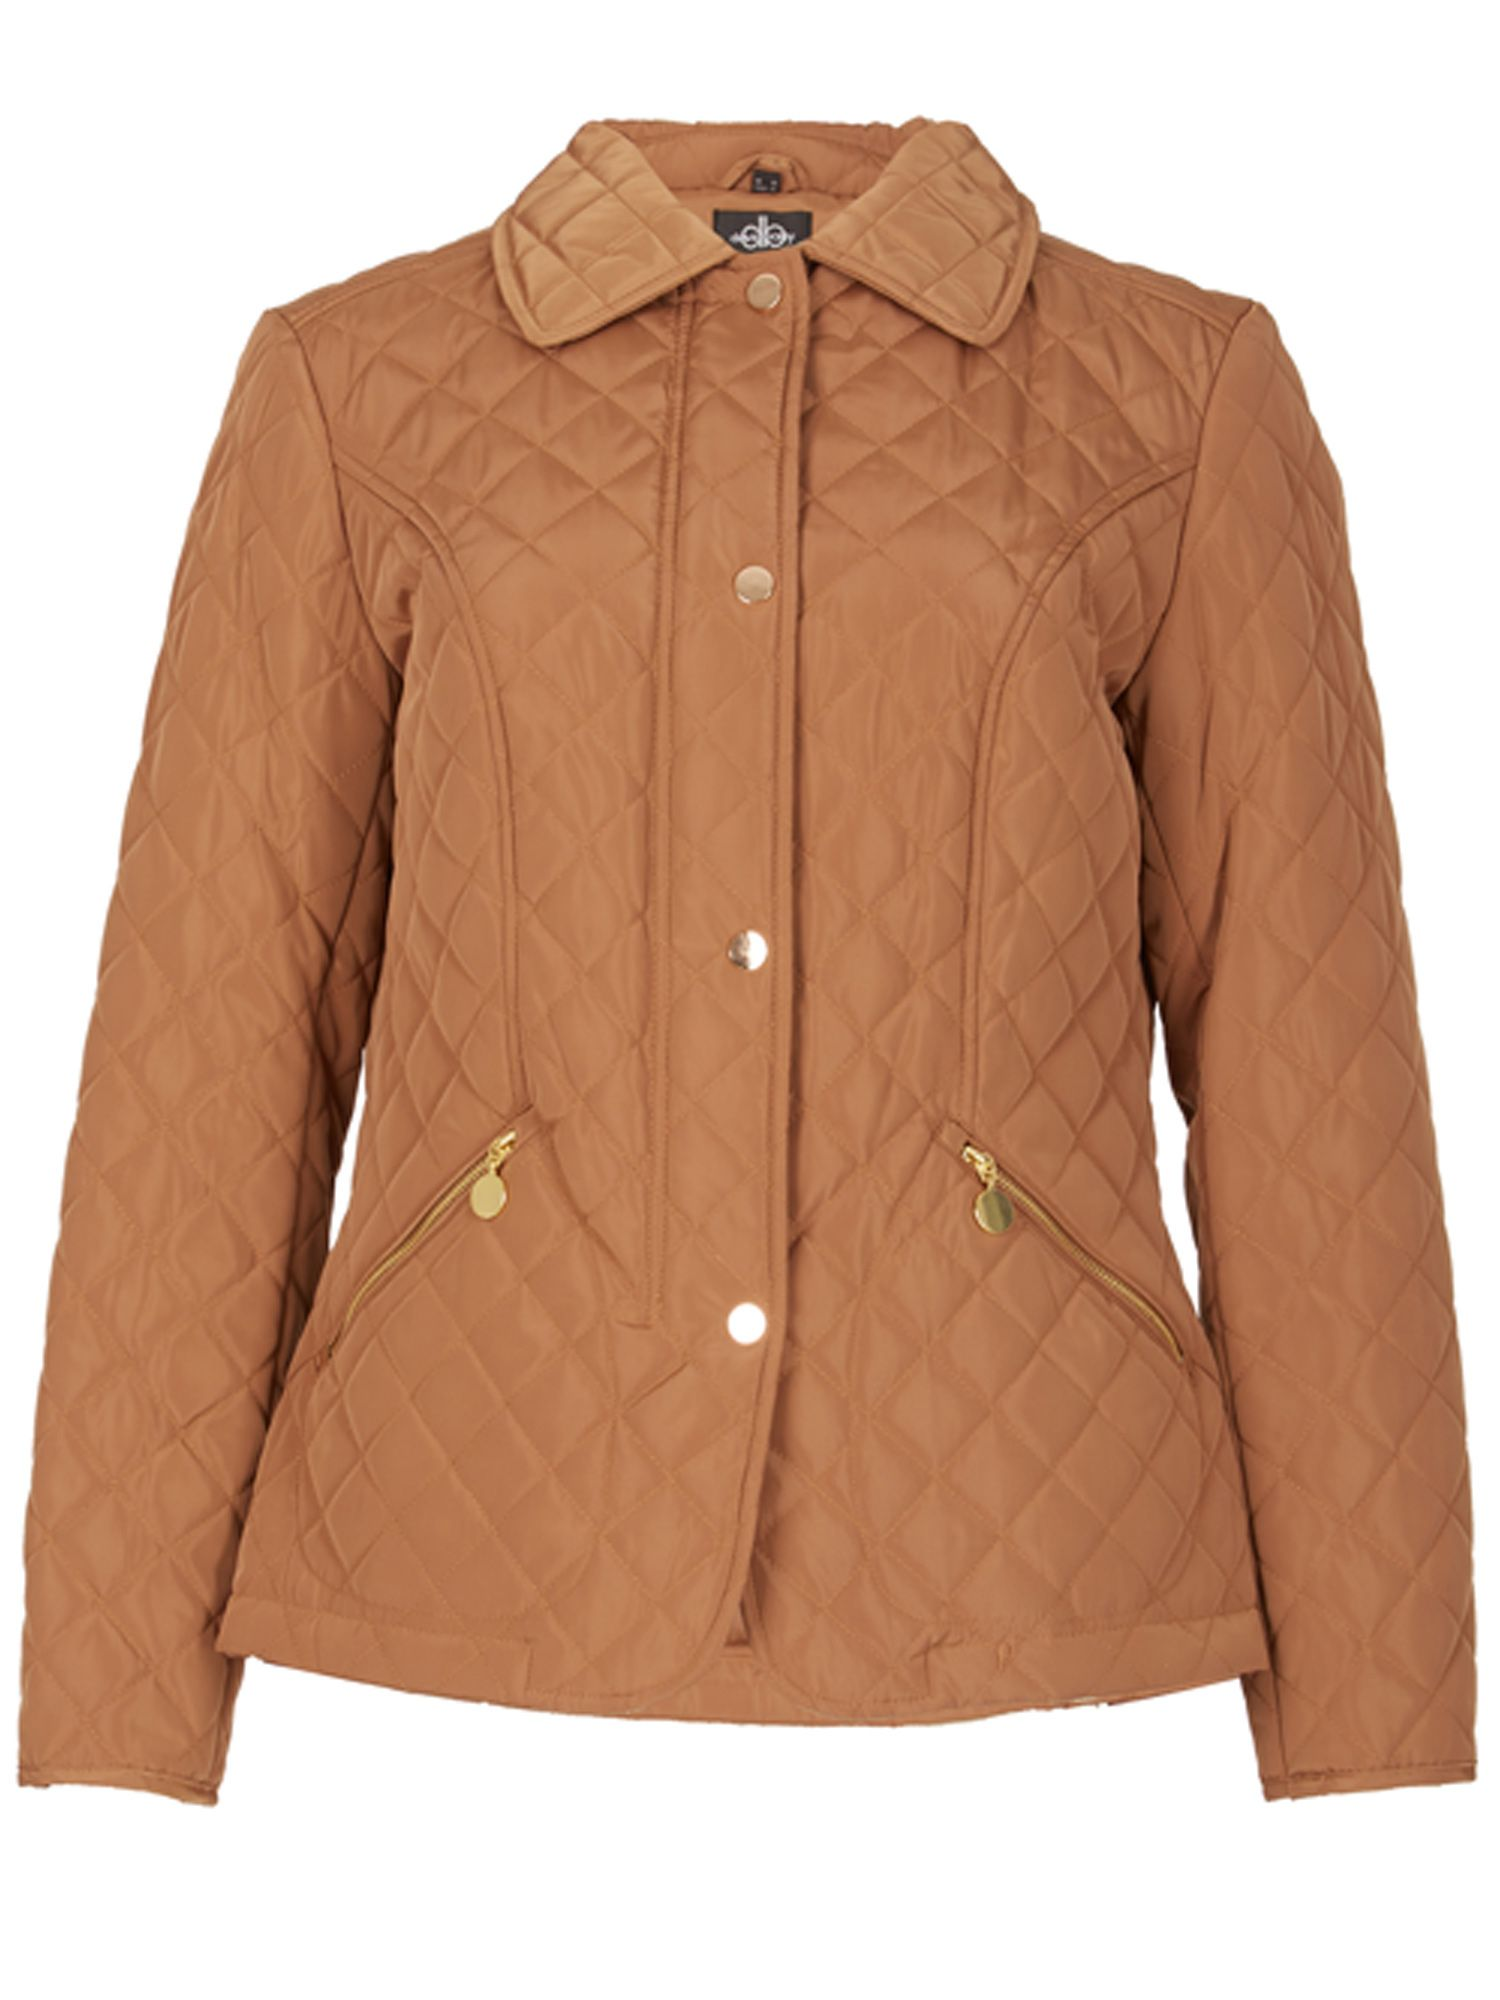 David Barry Ladies Jacket, Gold